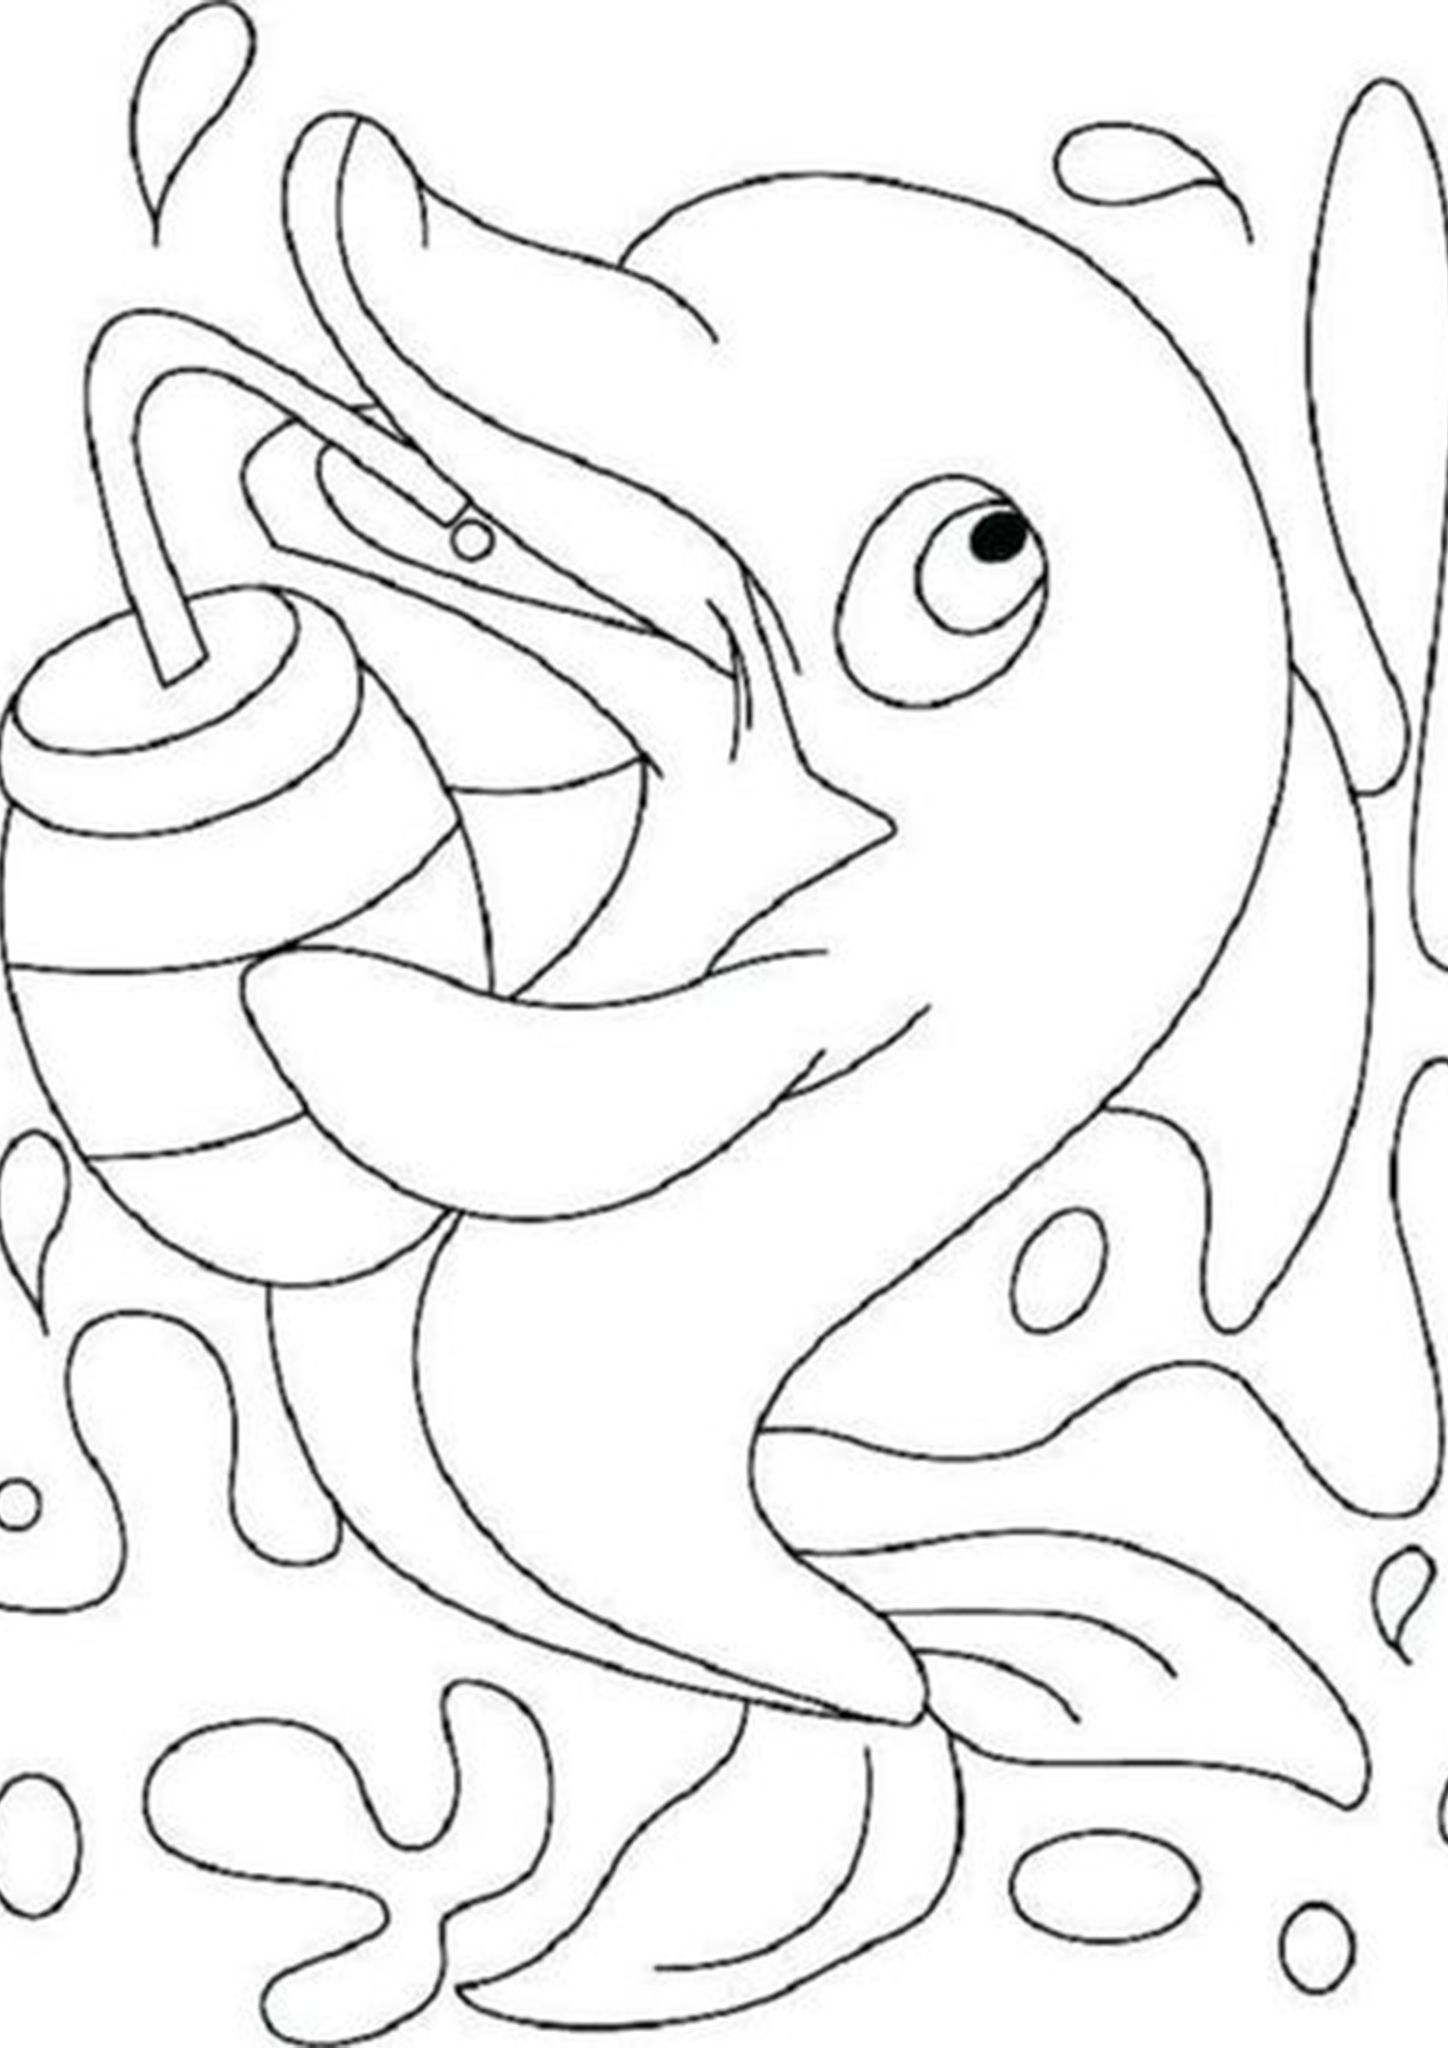 Free & Easy To Print Dolphin Coloring Pages in 2020